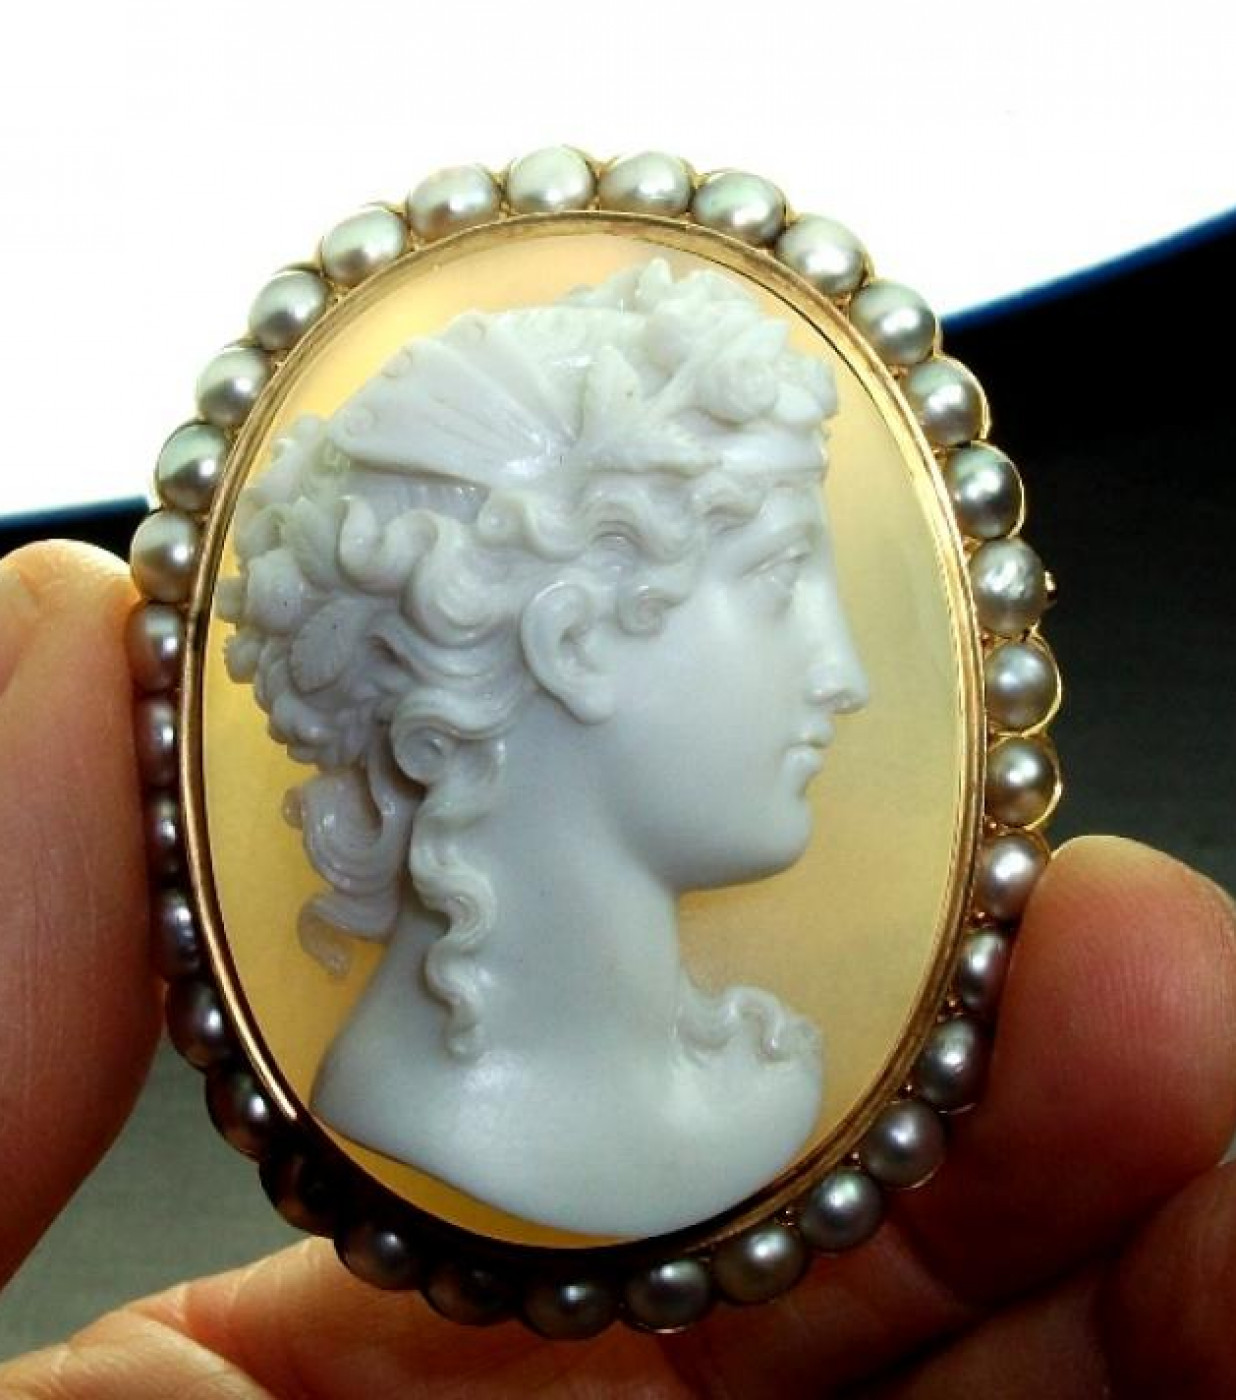 Outstanding Hard Stone Cameo of Psyche